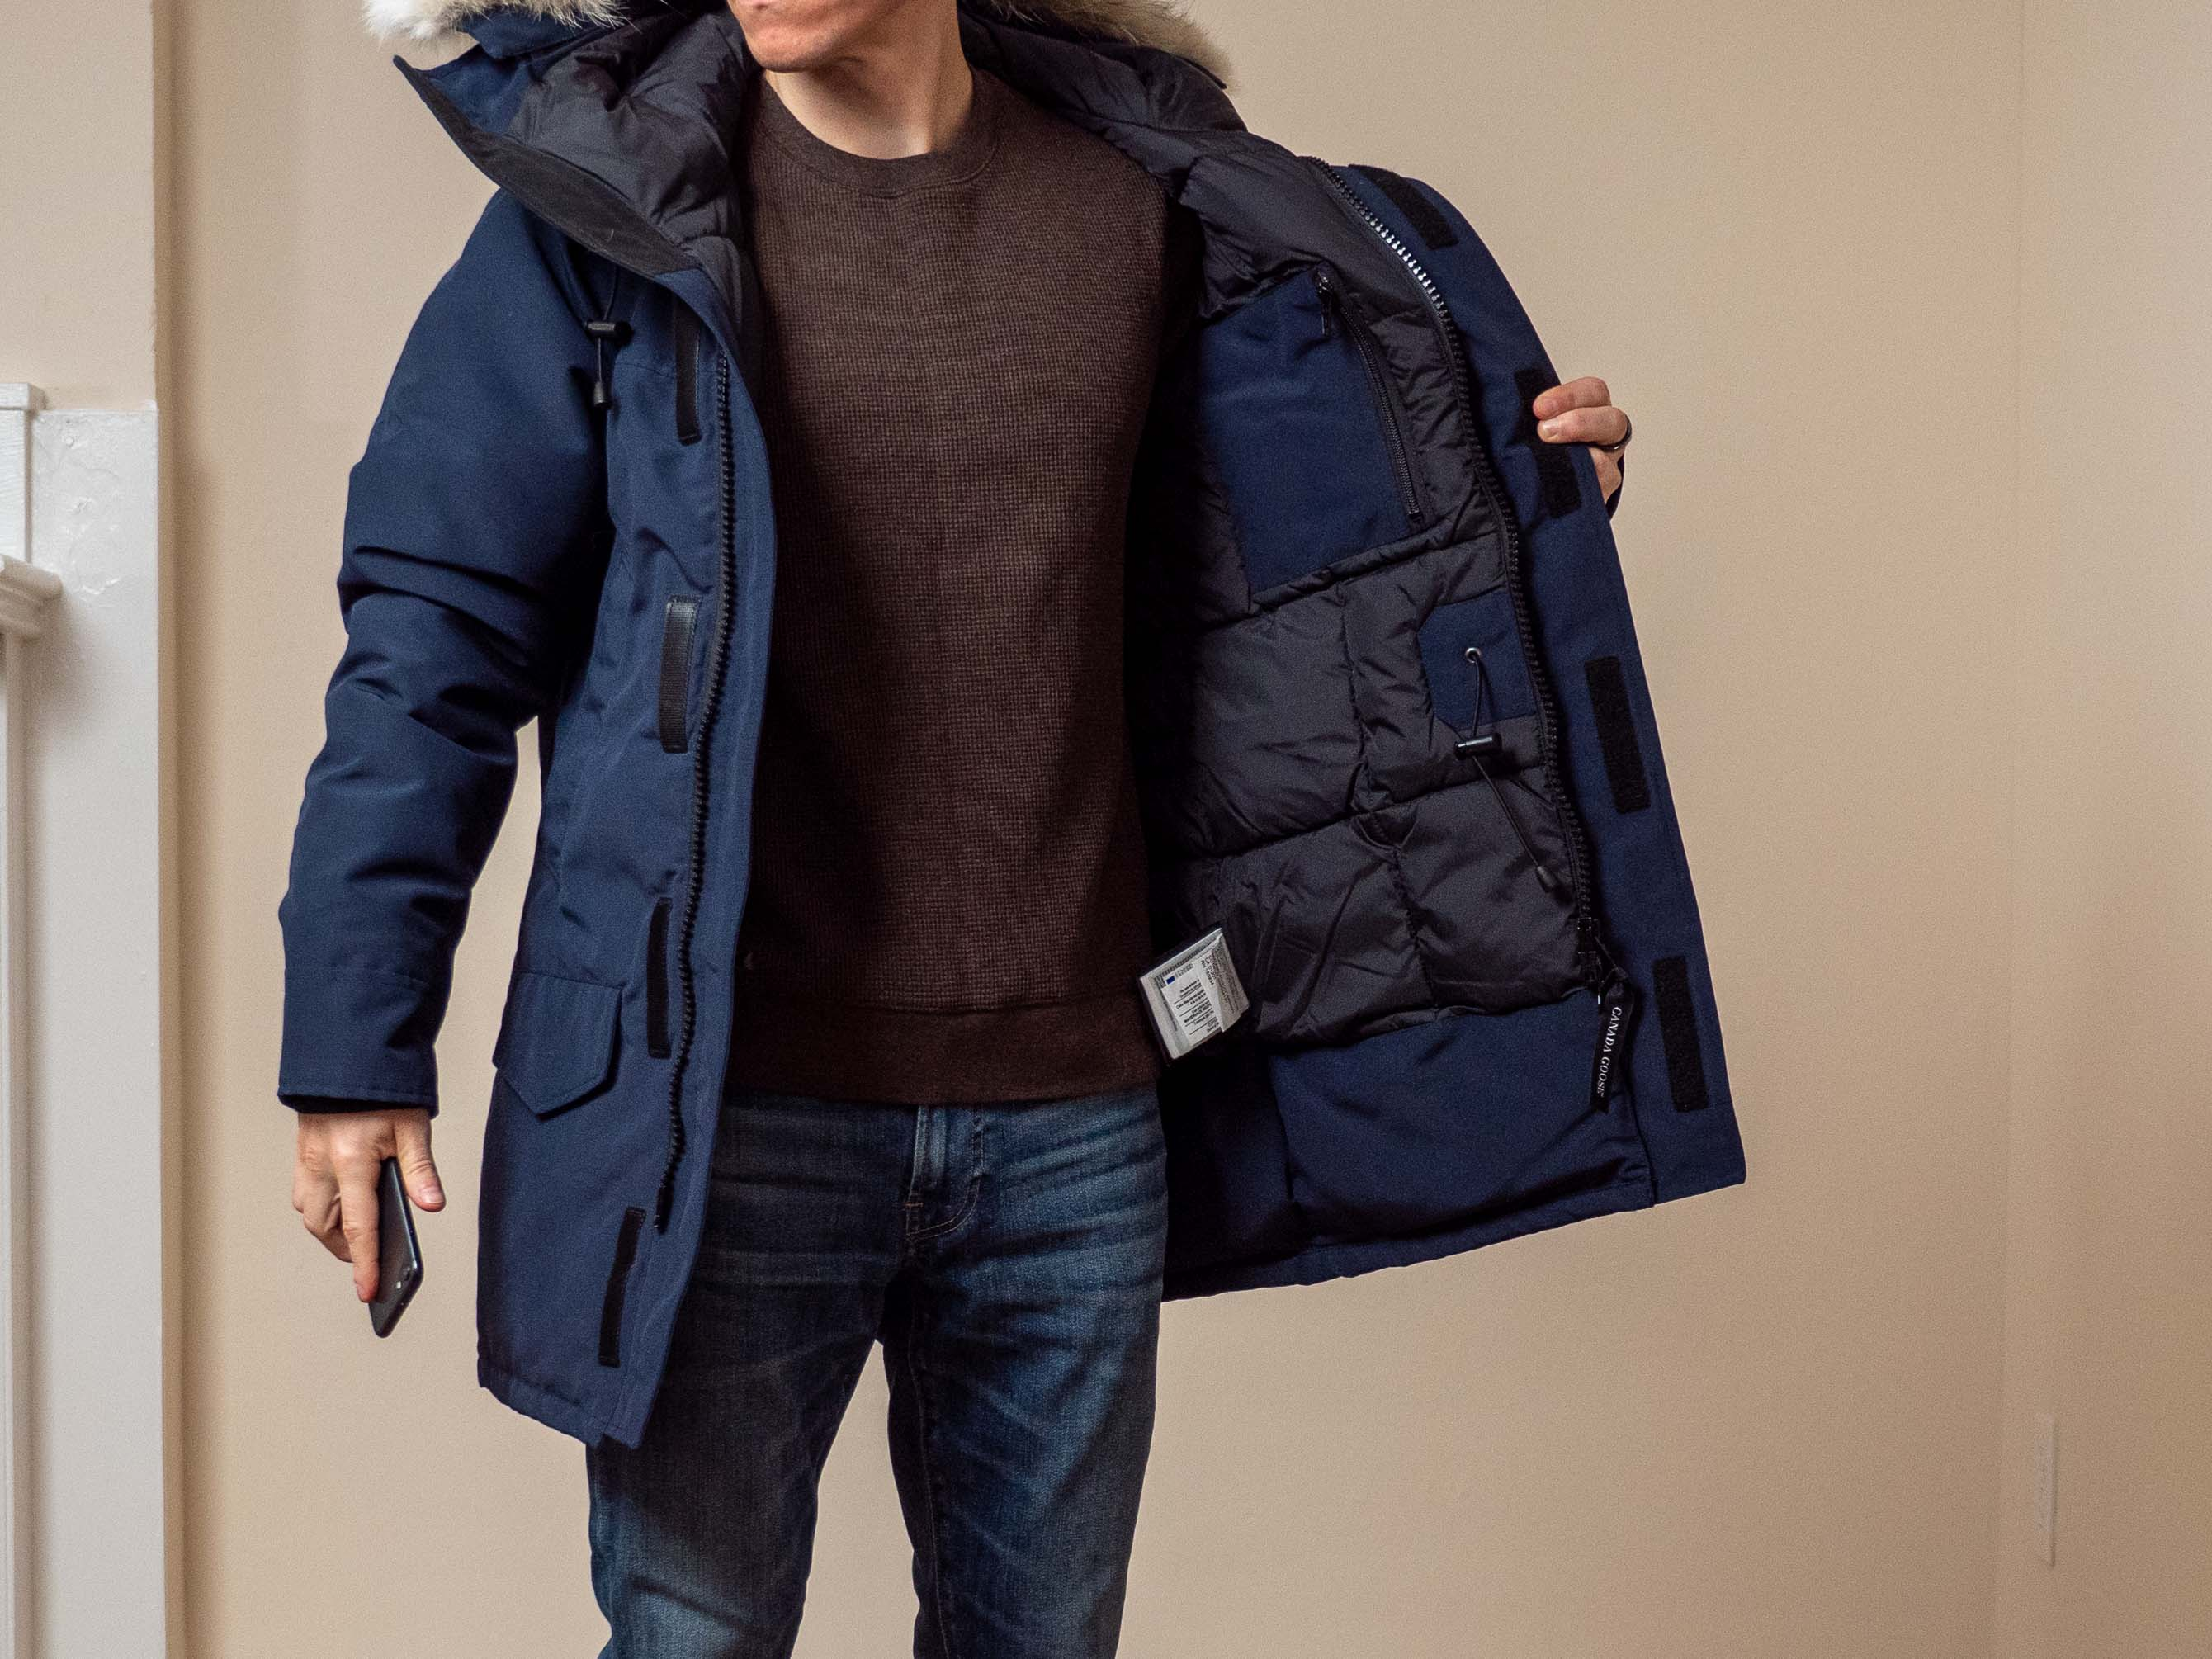 Canada Goose Fusion Fit inside jacket